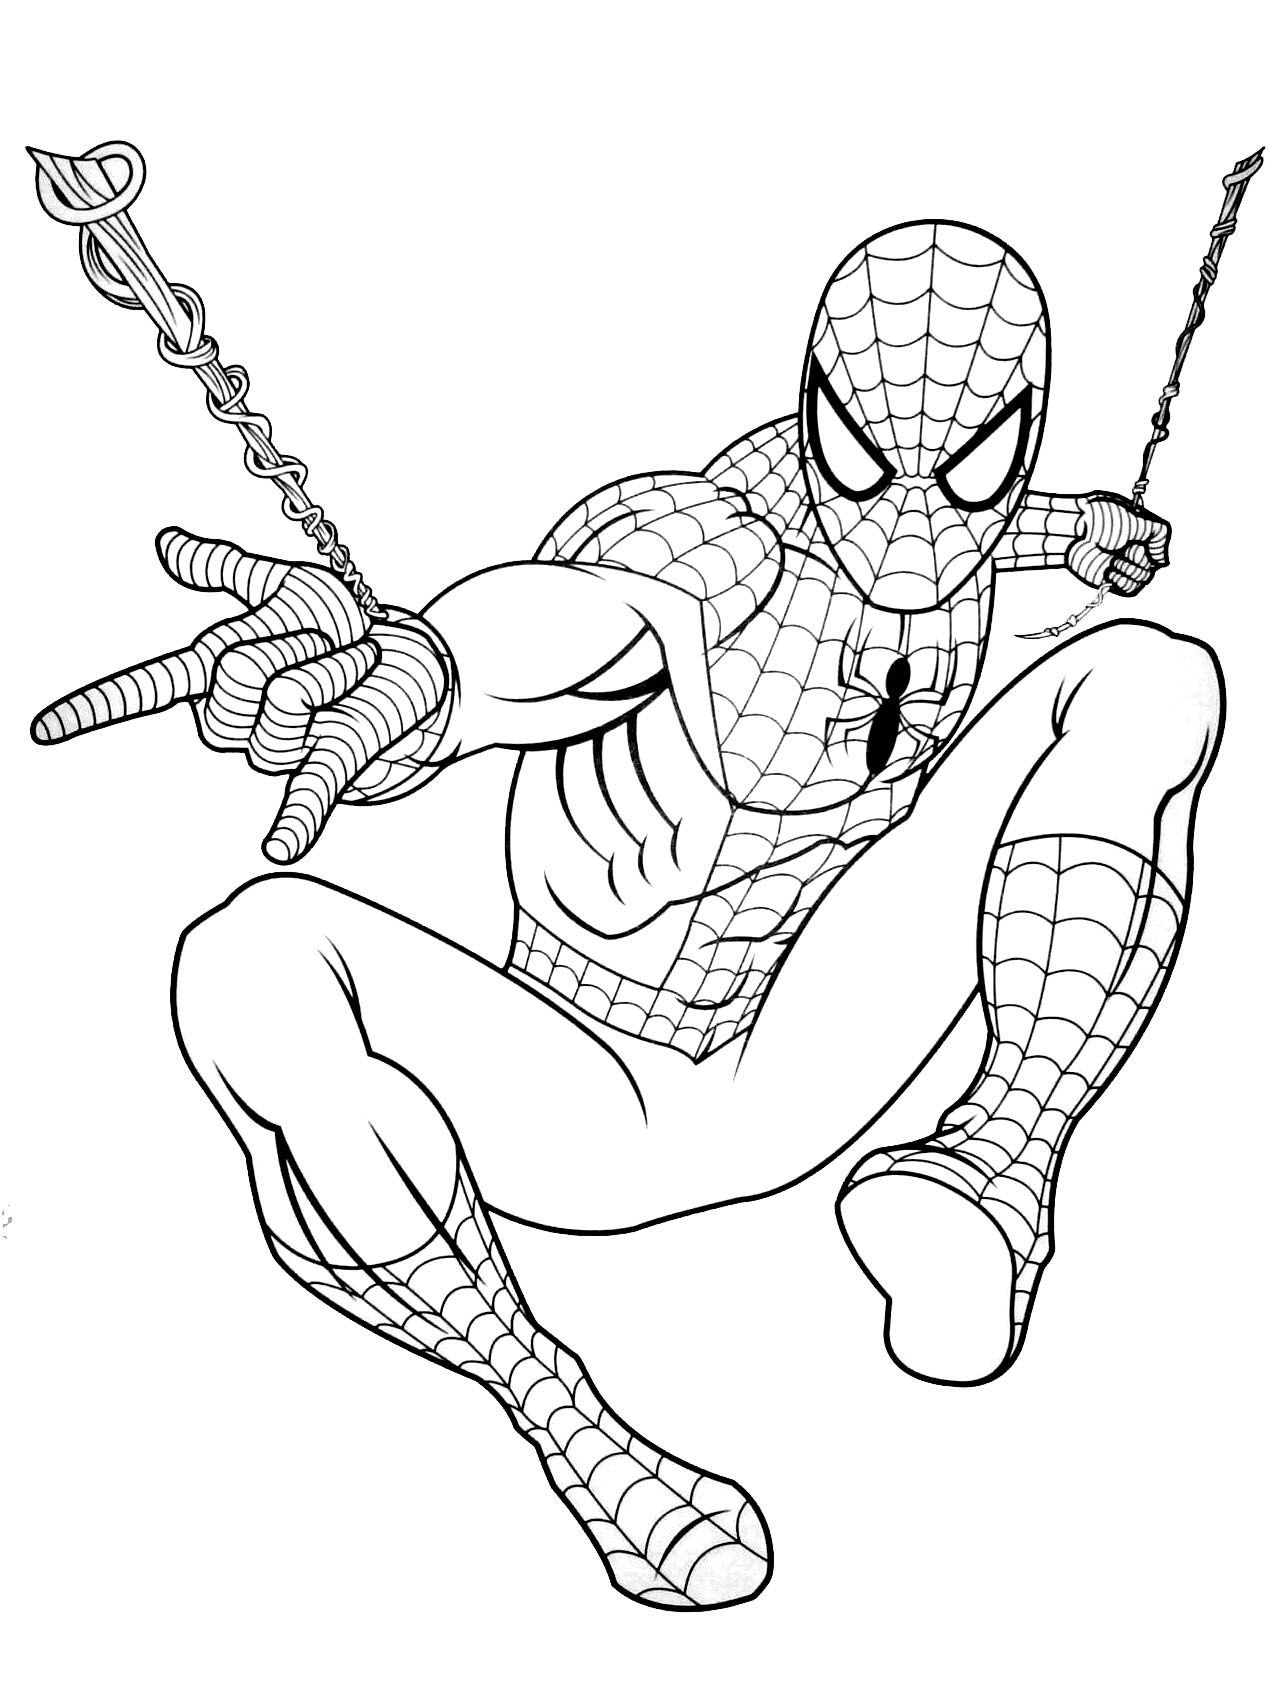 20 dessins de coloriage spiderman gratuit imprimer. Black Bedroom Furniture Sets. Home Design Ideas